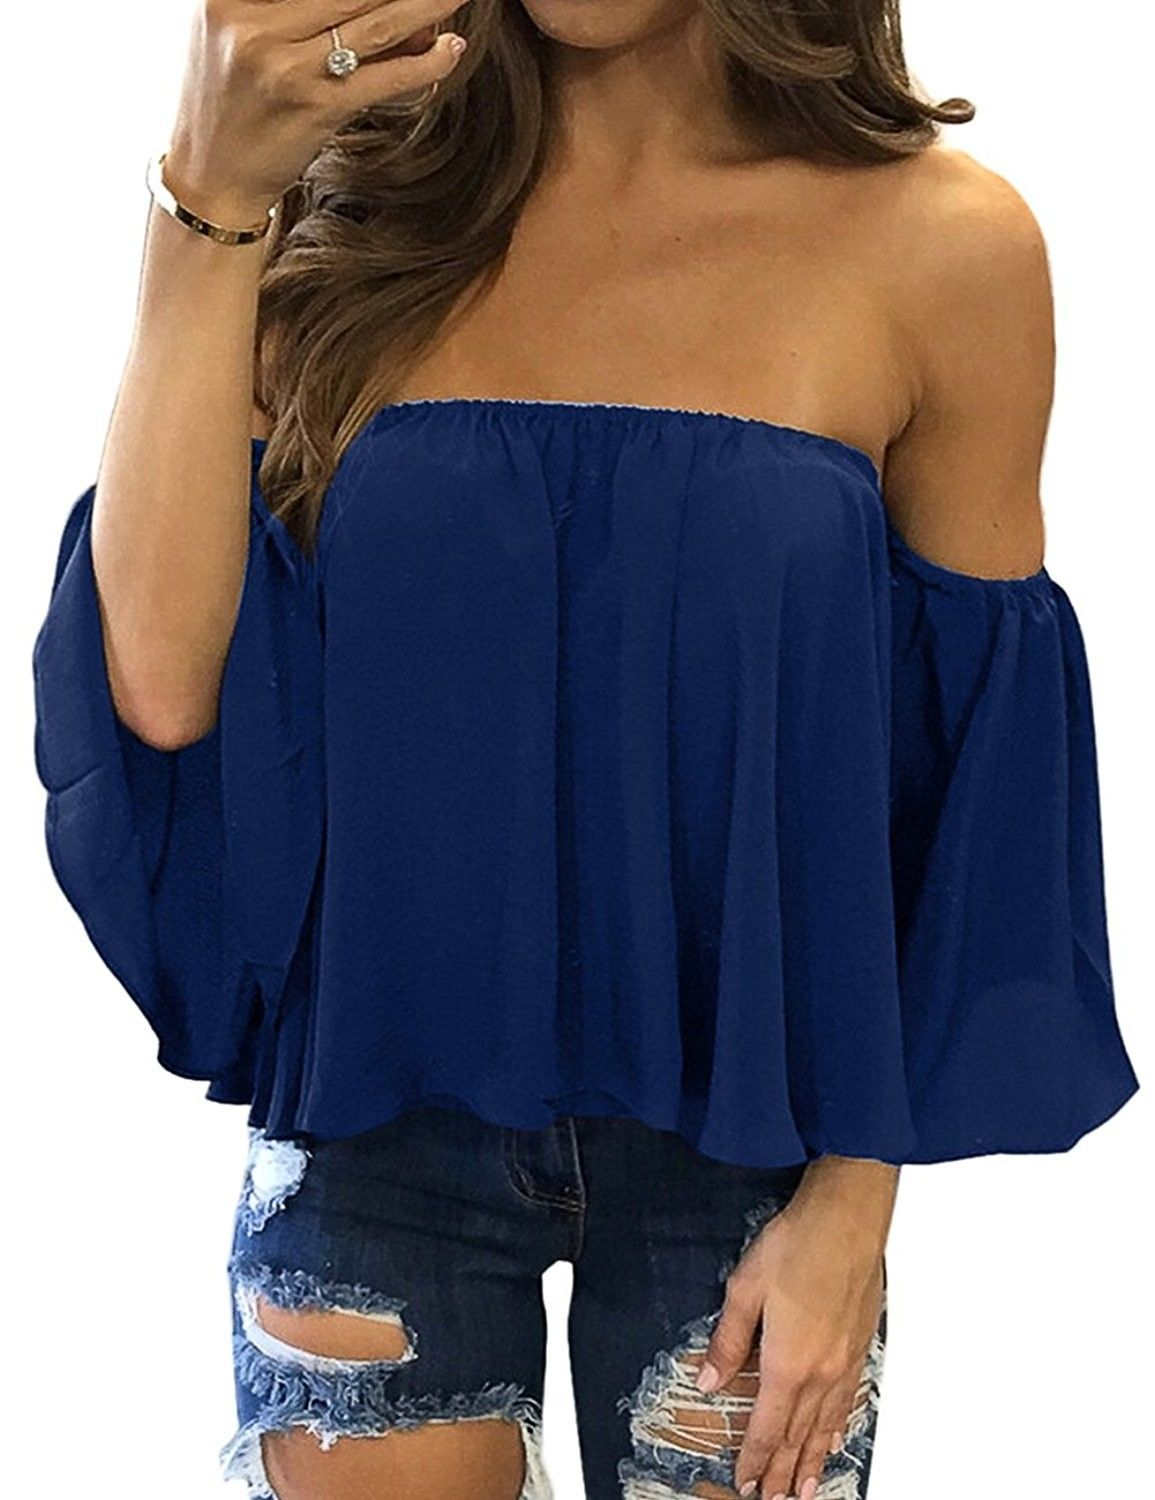 Teen Girls Summer 2018 Womens Plus Size Floral Printed Off Shoulder Casual Tops Camis Blouse